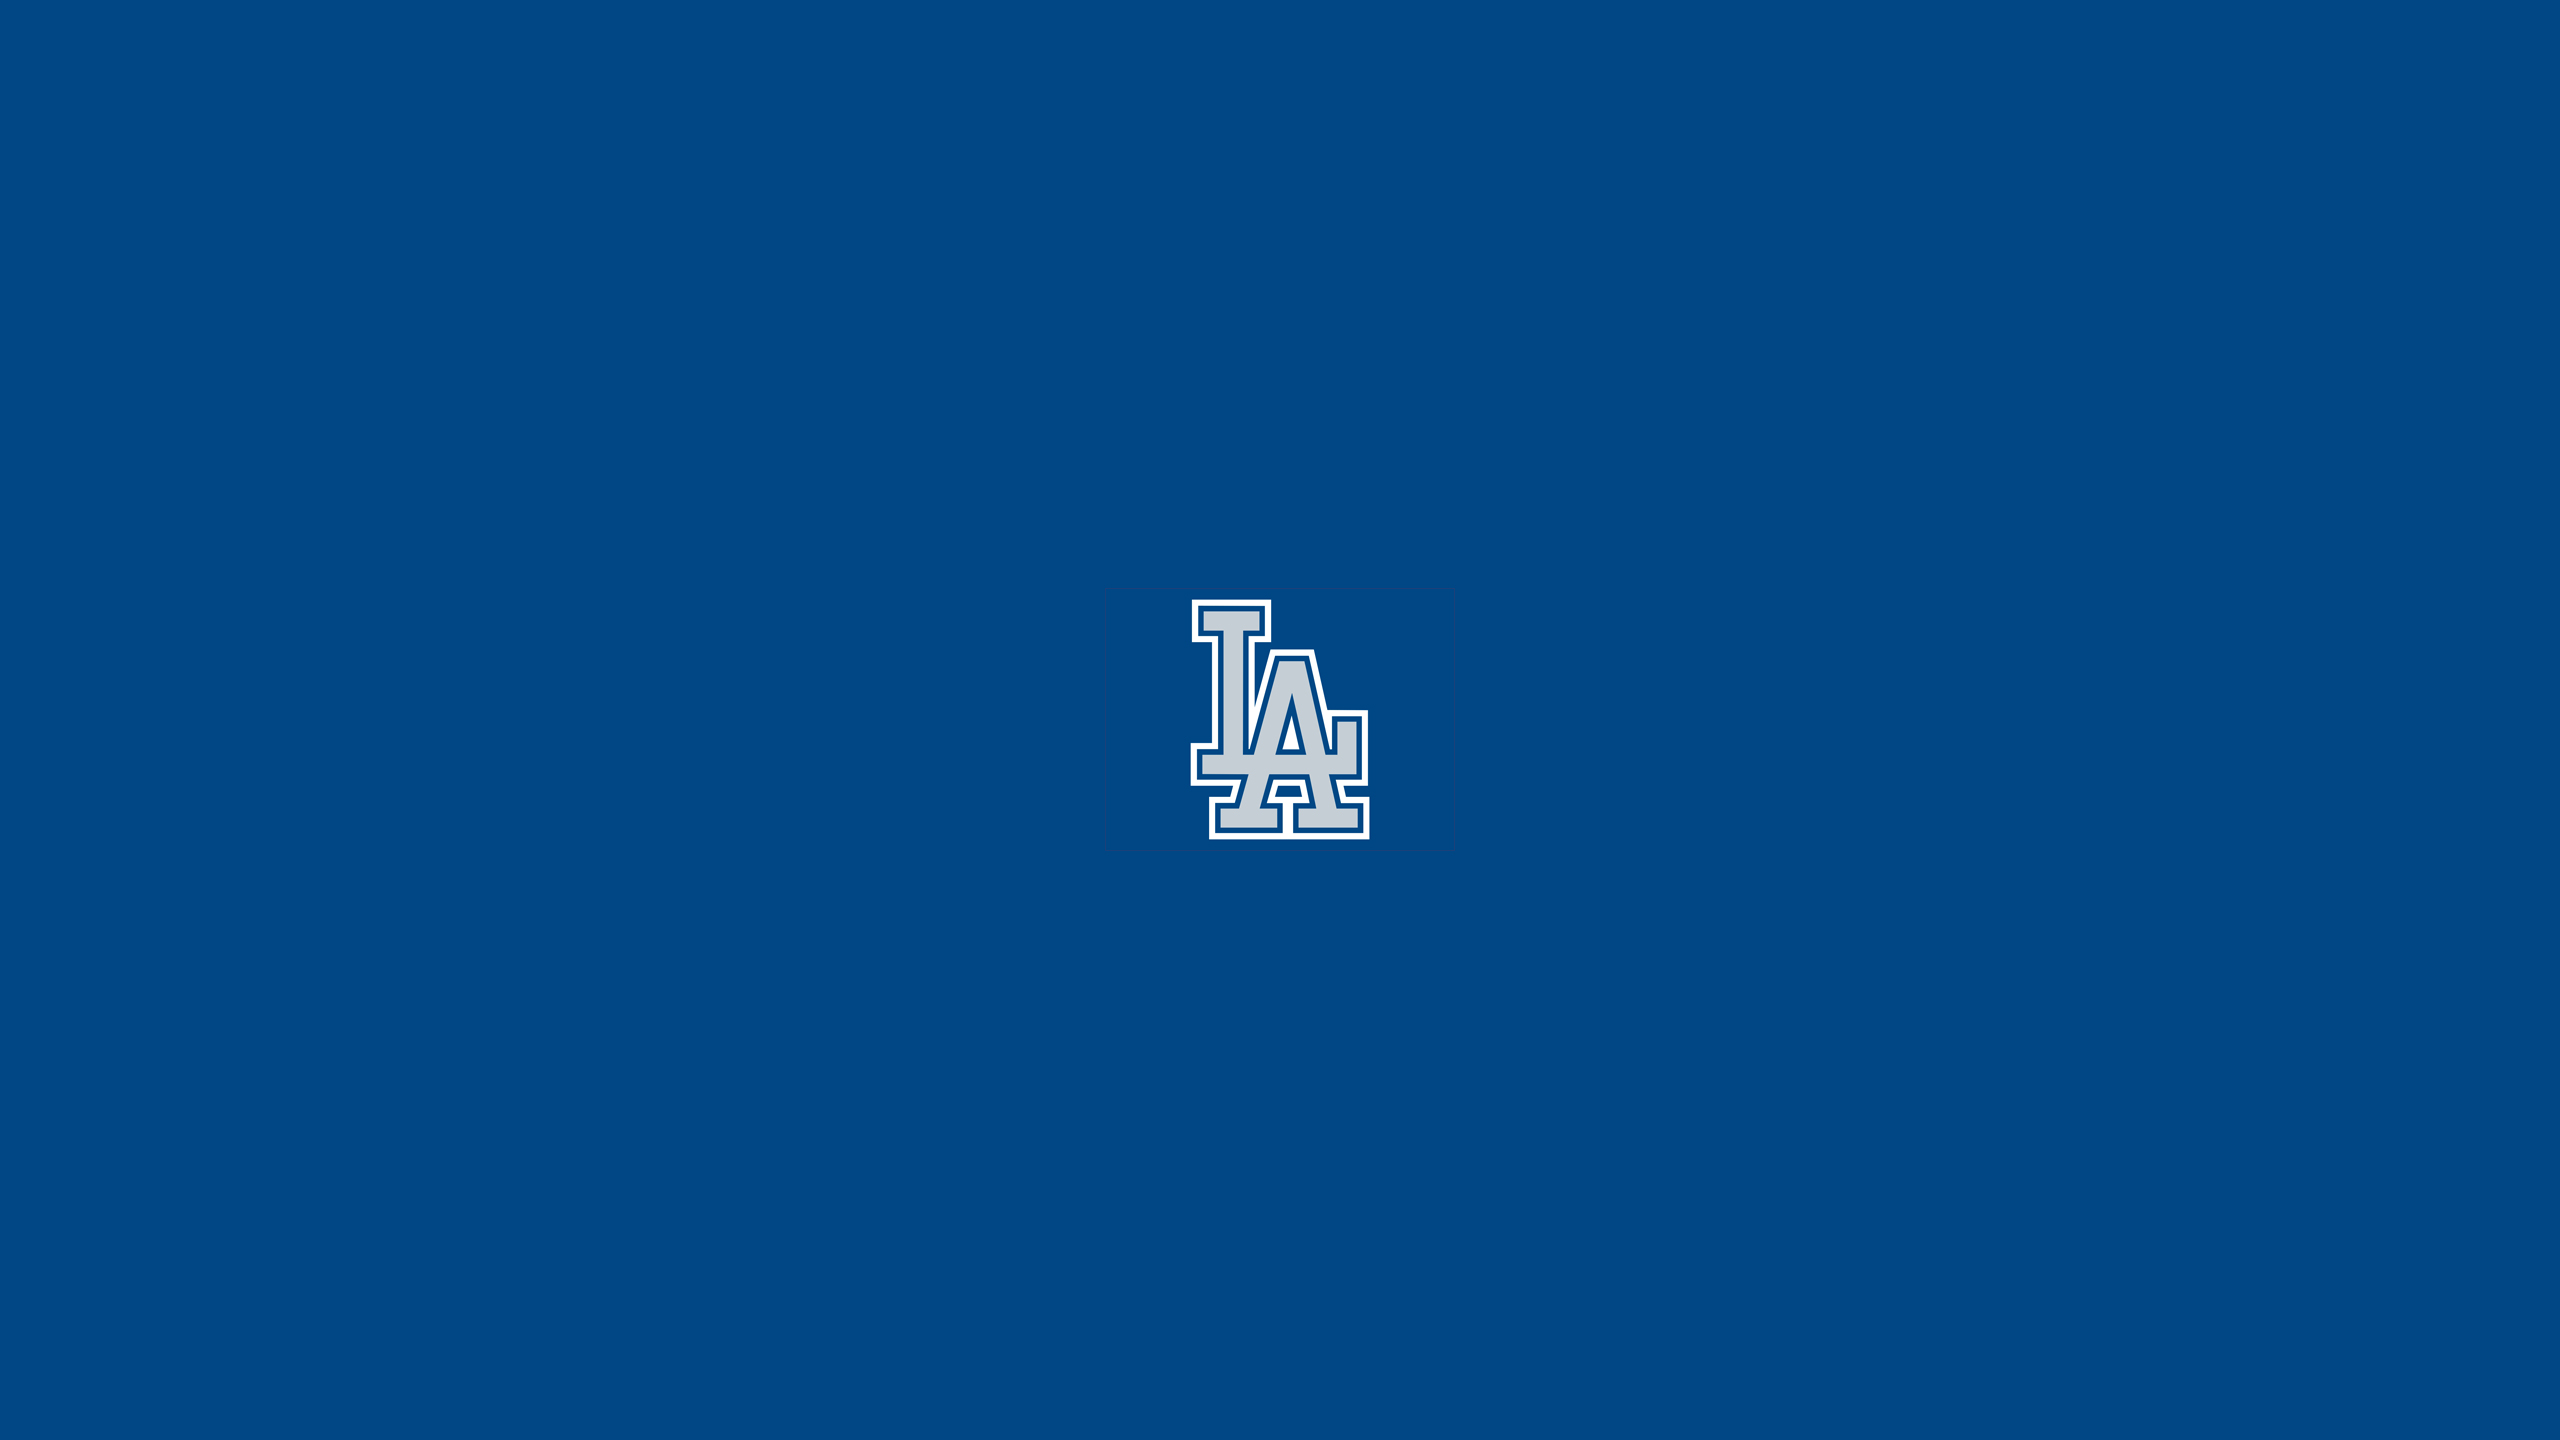 6 hd los angeles dodgers wallpapers - hdwallsource